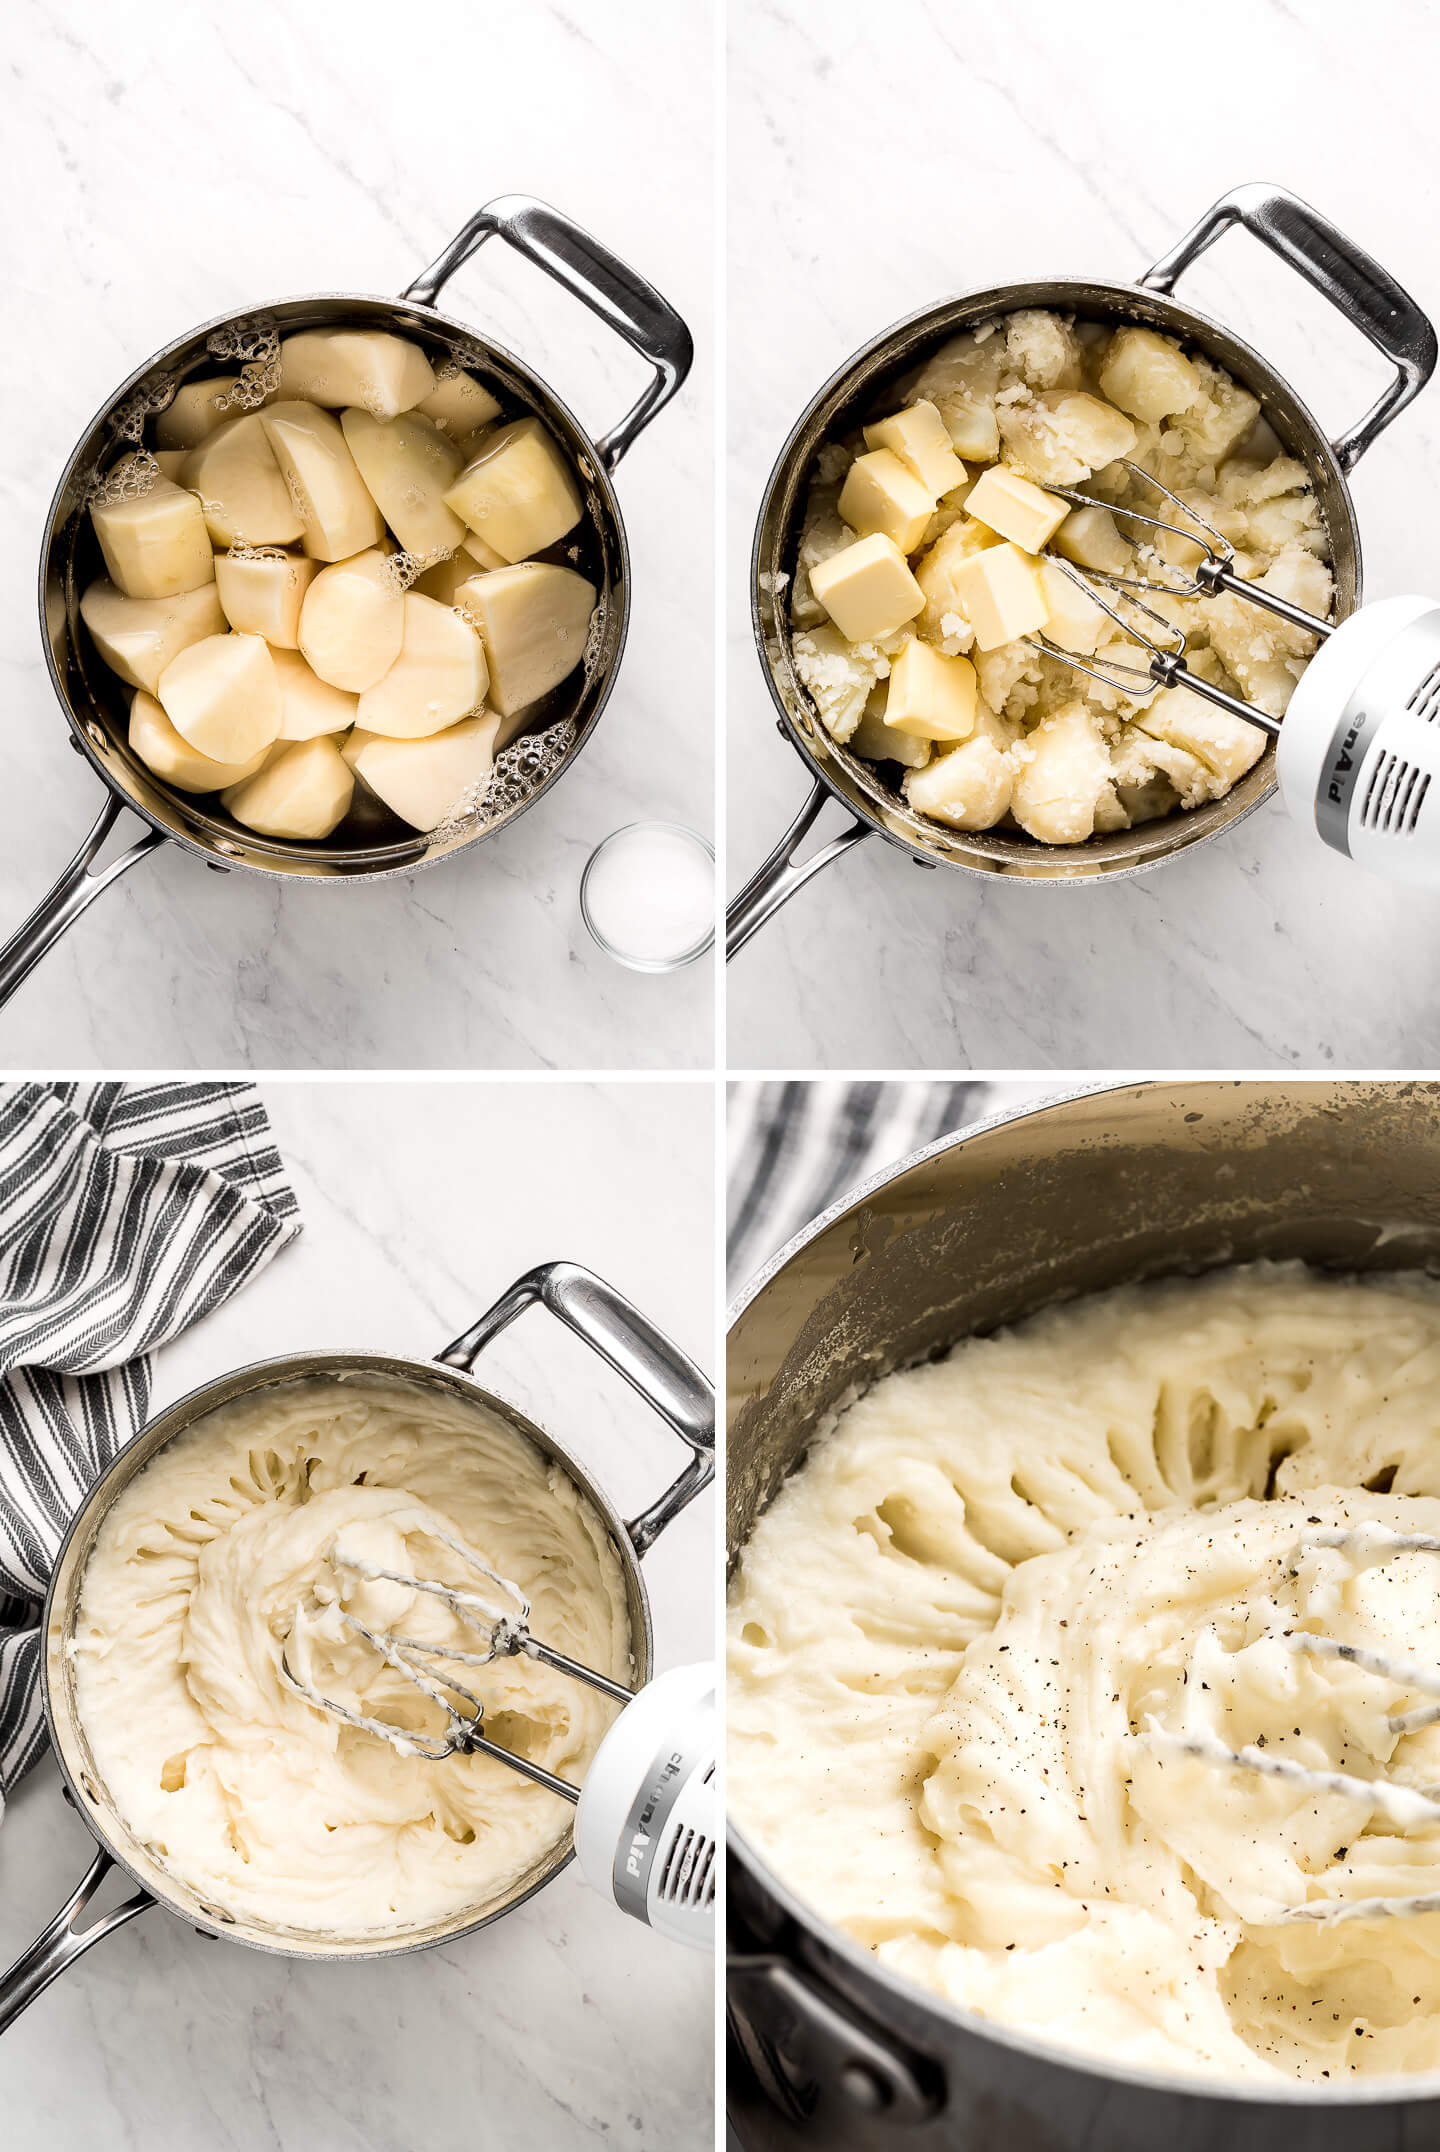 Four photos showing how to make homemade mashed potatoes.